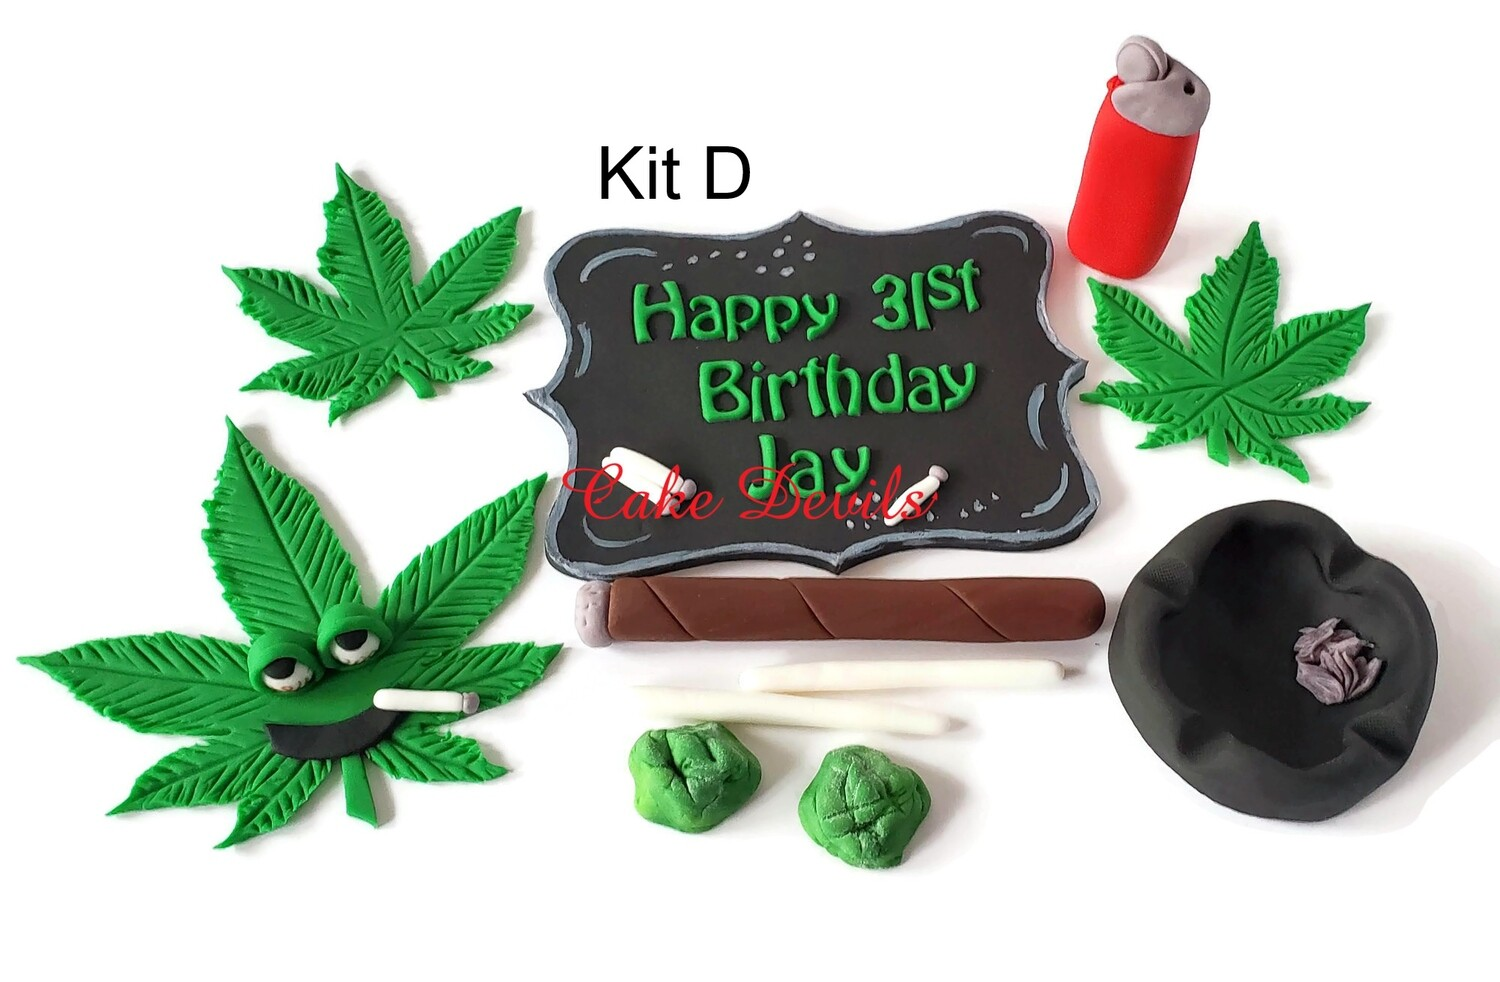 Pot Leaf Birthday Cake Topper set, Fondant Pot Leaf, Plaque with Joints